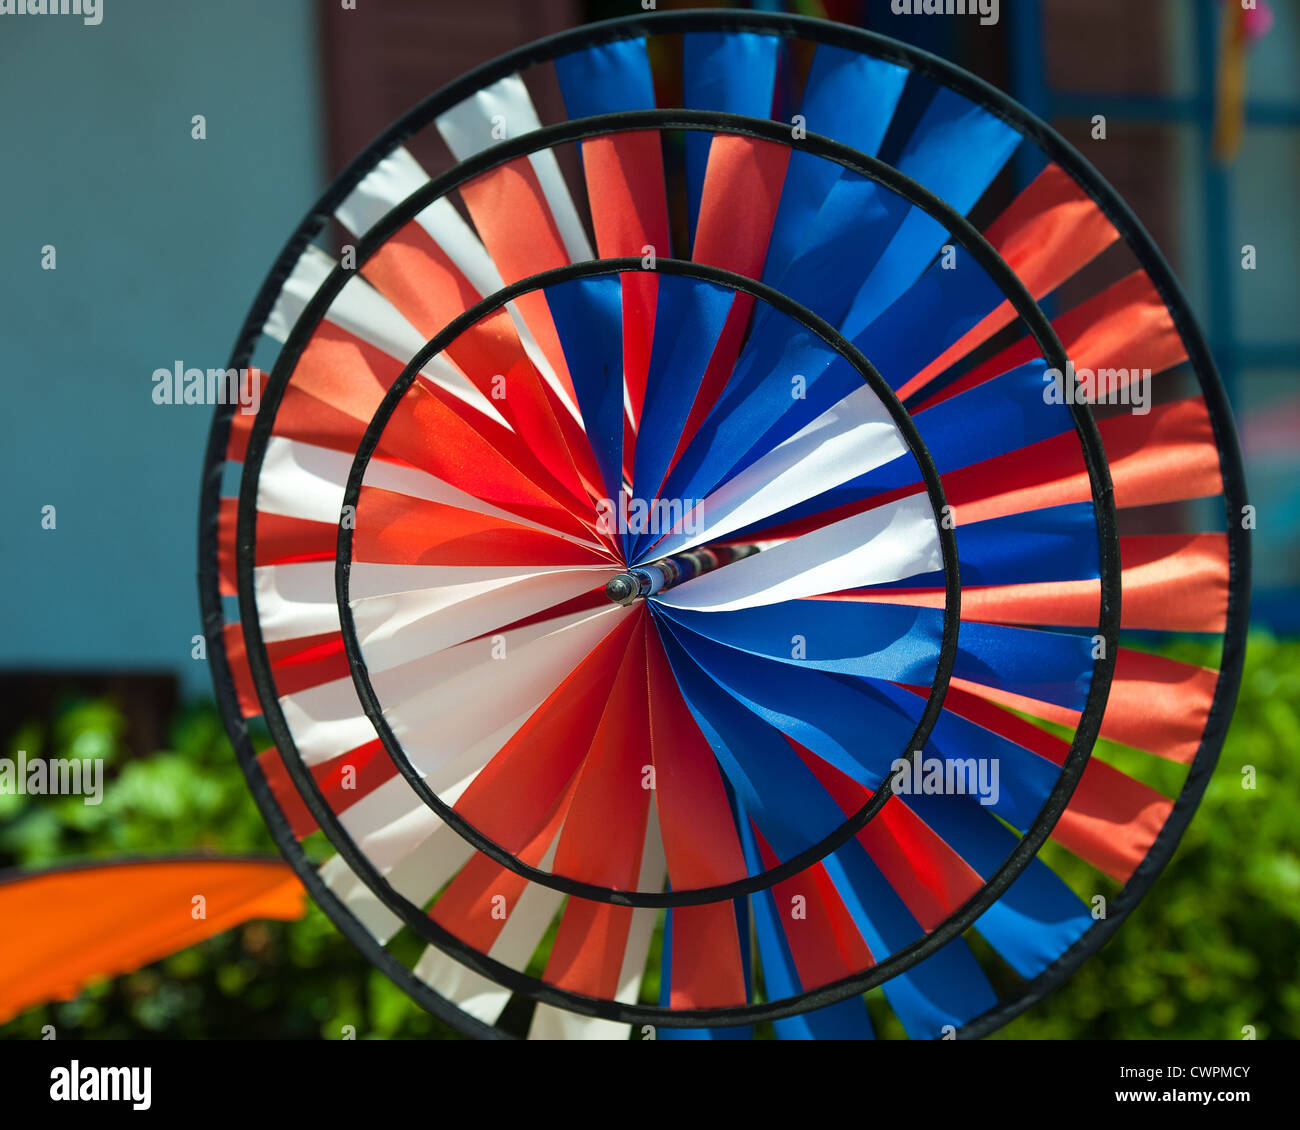 Multi wheel cloth windmill - Stock Image